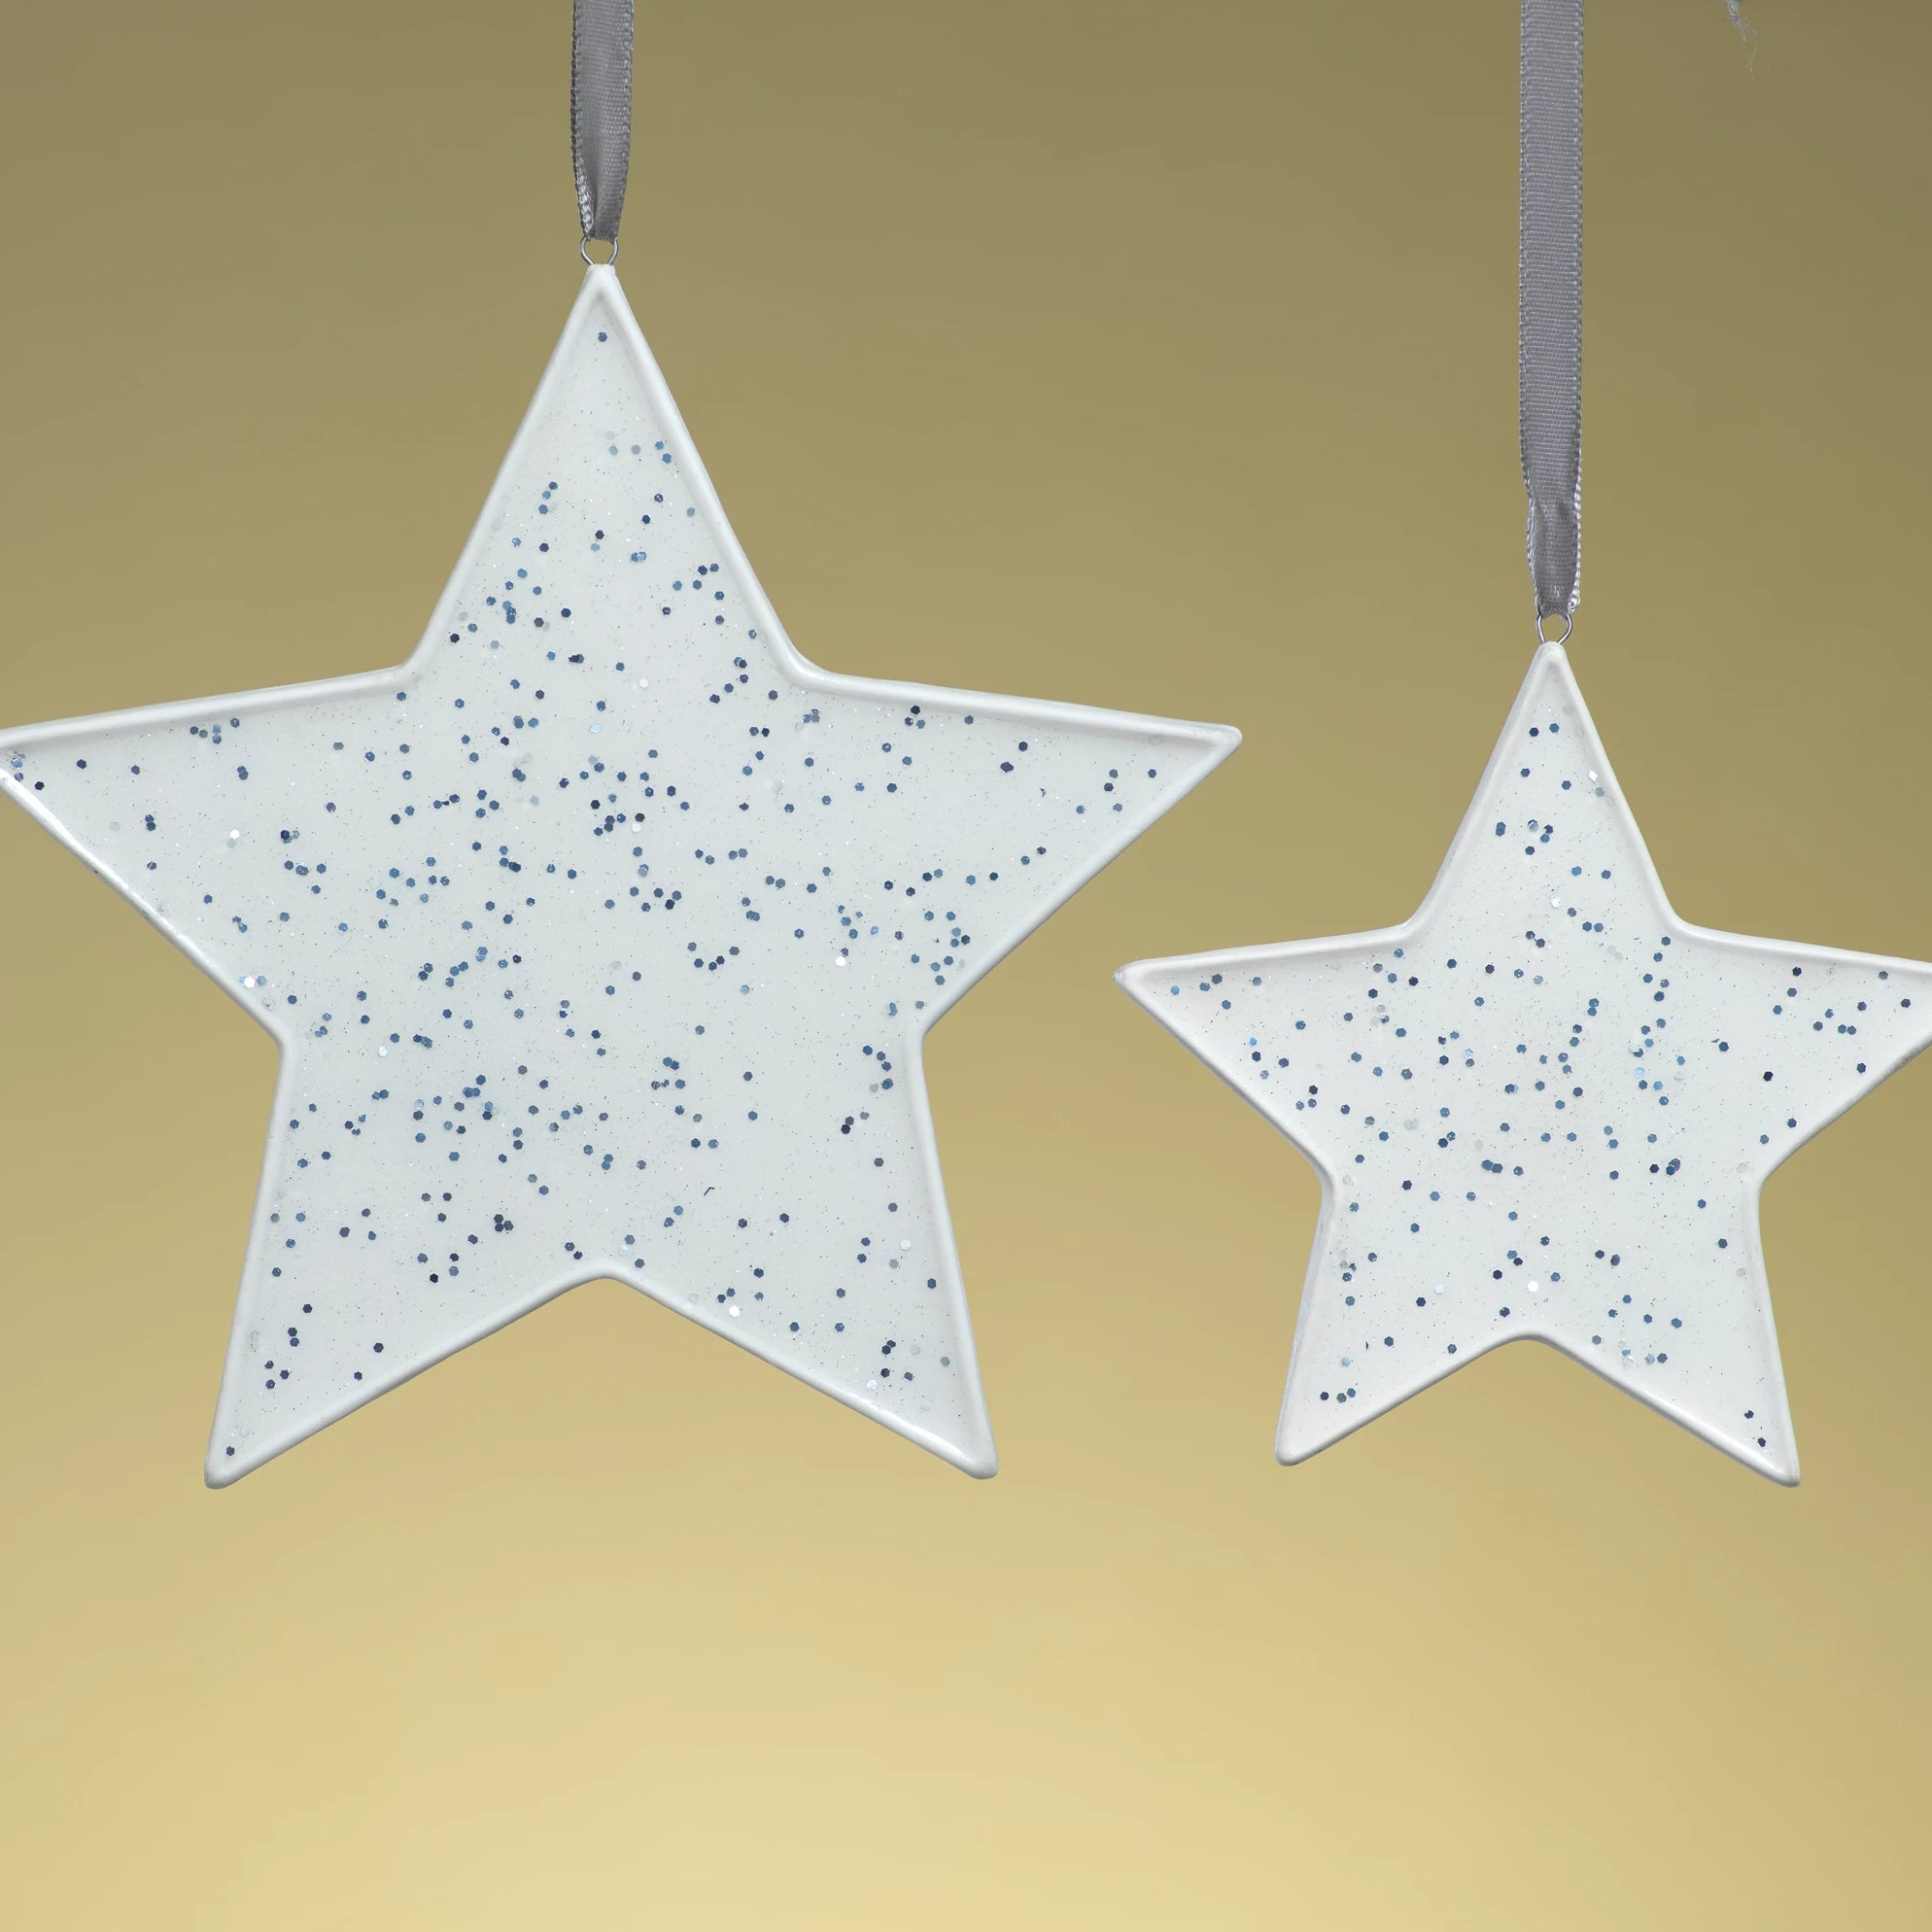 Speckled Star Ornament - Silver - CARLYLE AVENUE